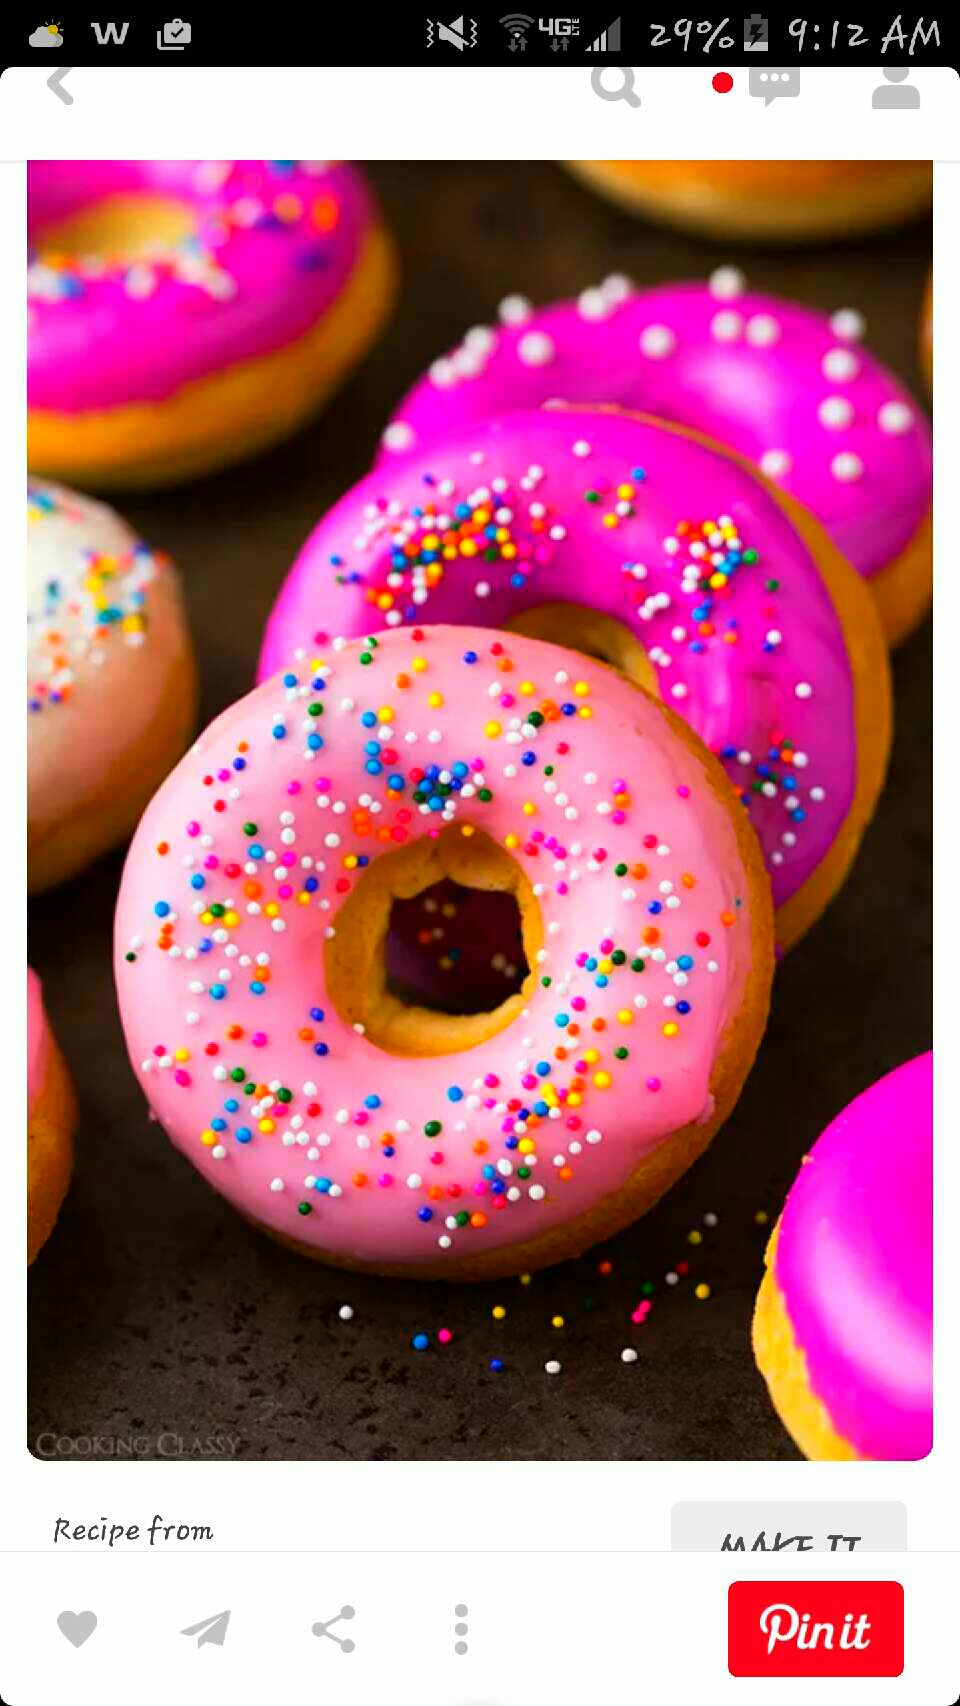 what you need for the glaze: 1 1/2 cups powdered sugar  3 tbsp melted butter  1 tsp vanilla extract  2-3 tbsp milk food coloring and sprinkles are optional